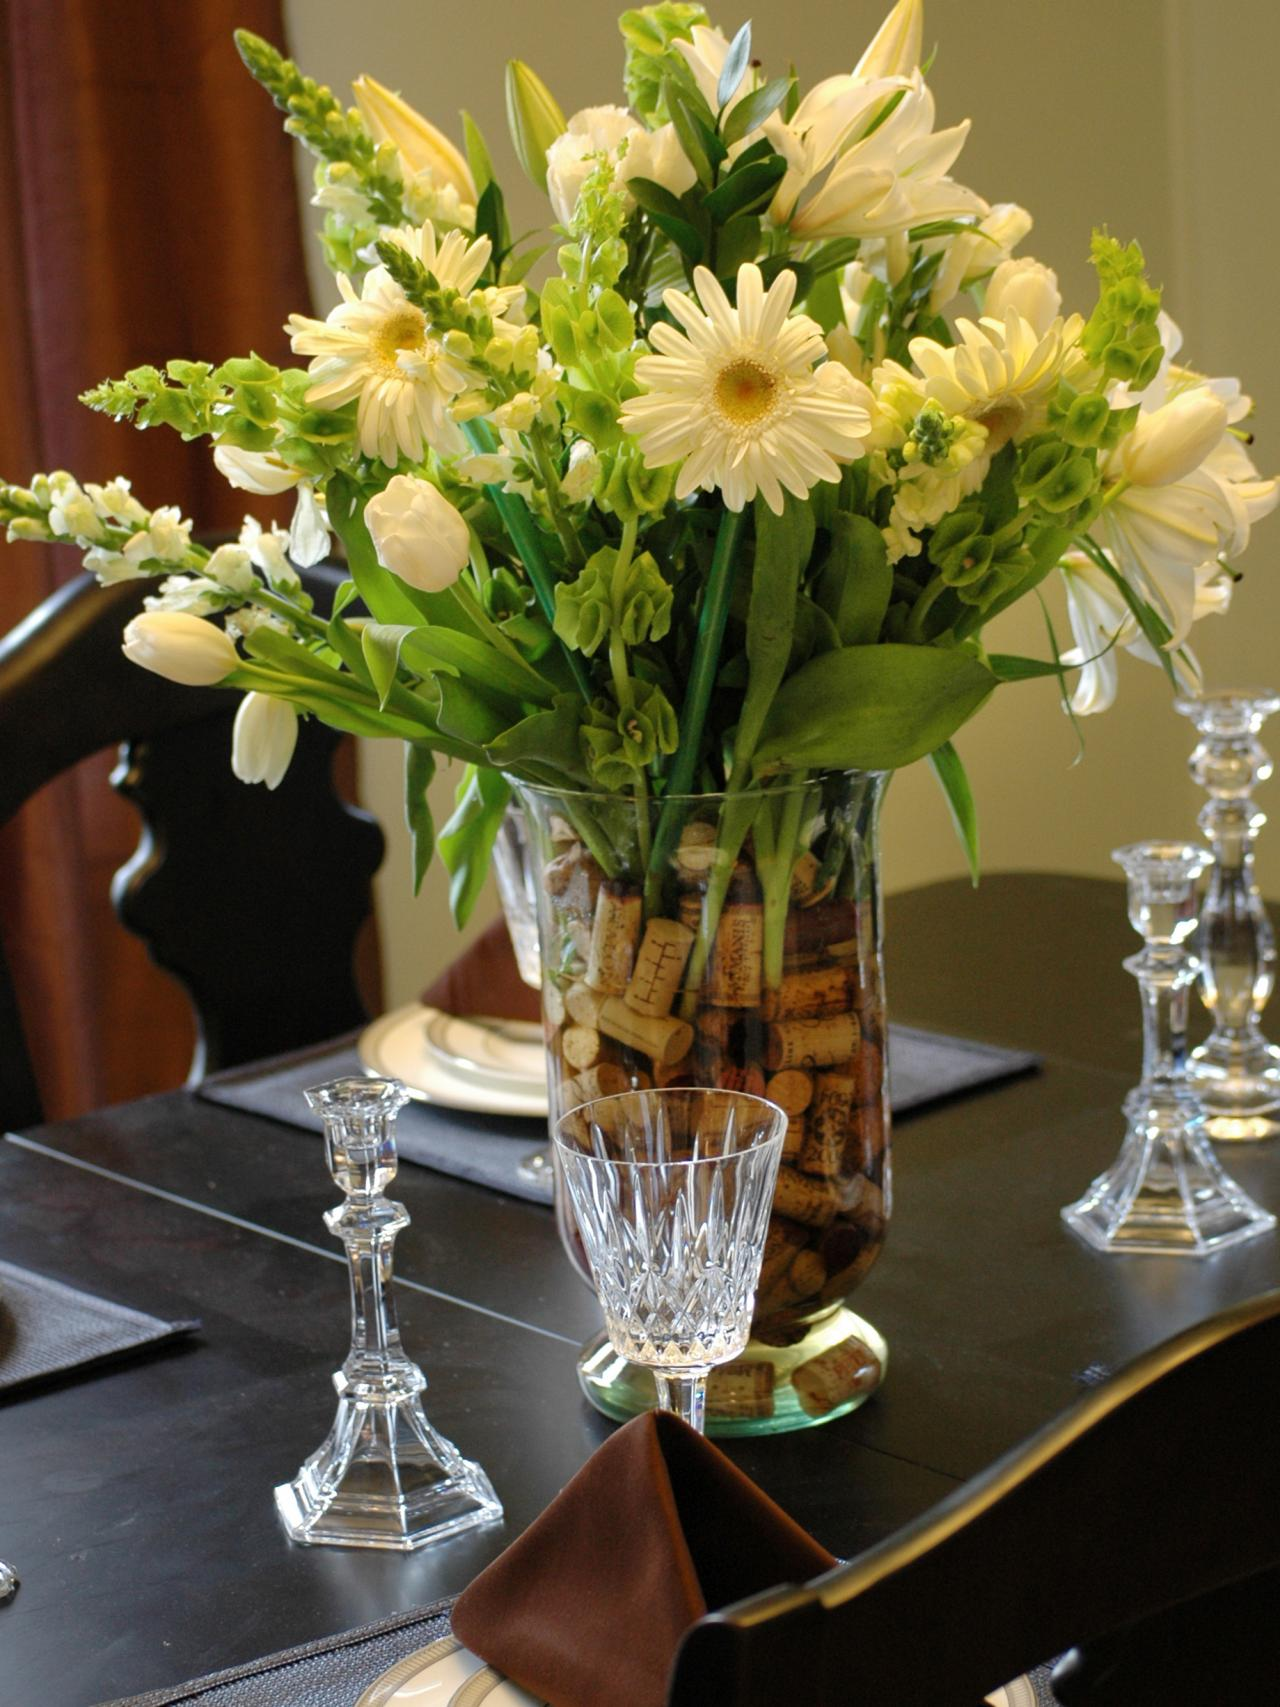 Dining Room Table Centerpiece Arrangements Photos HGTV